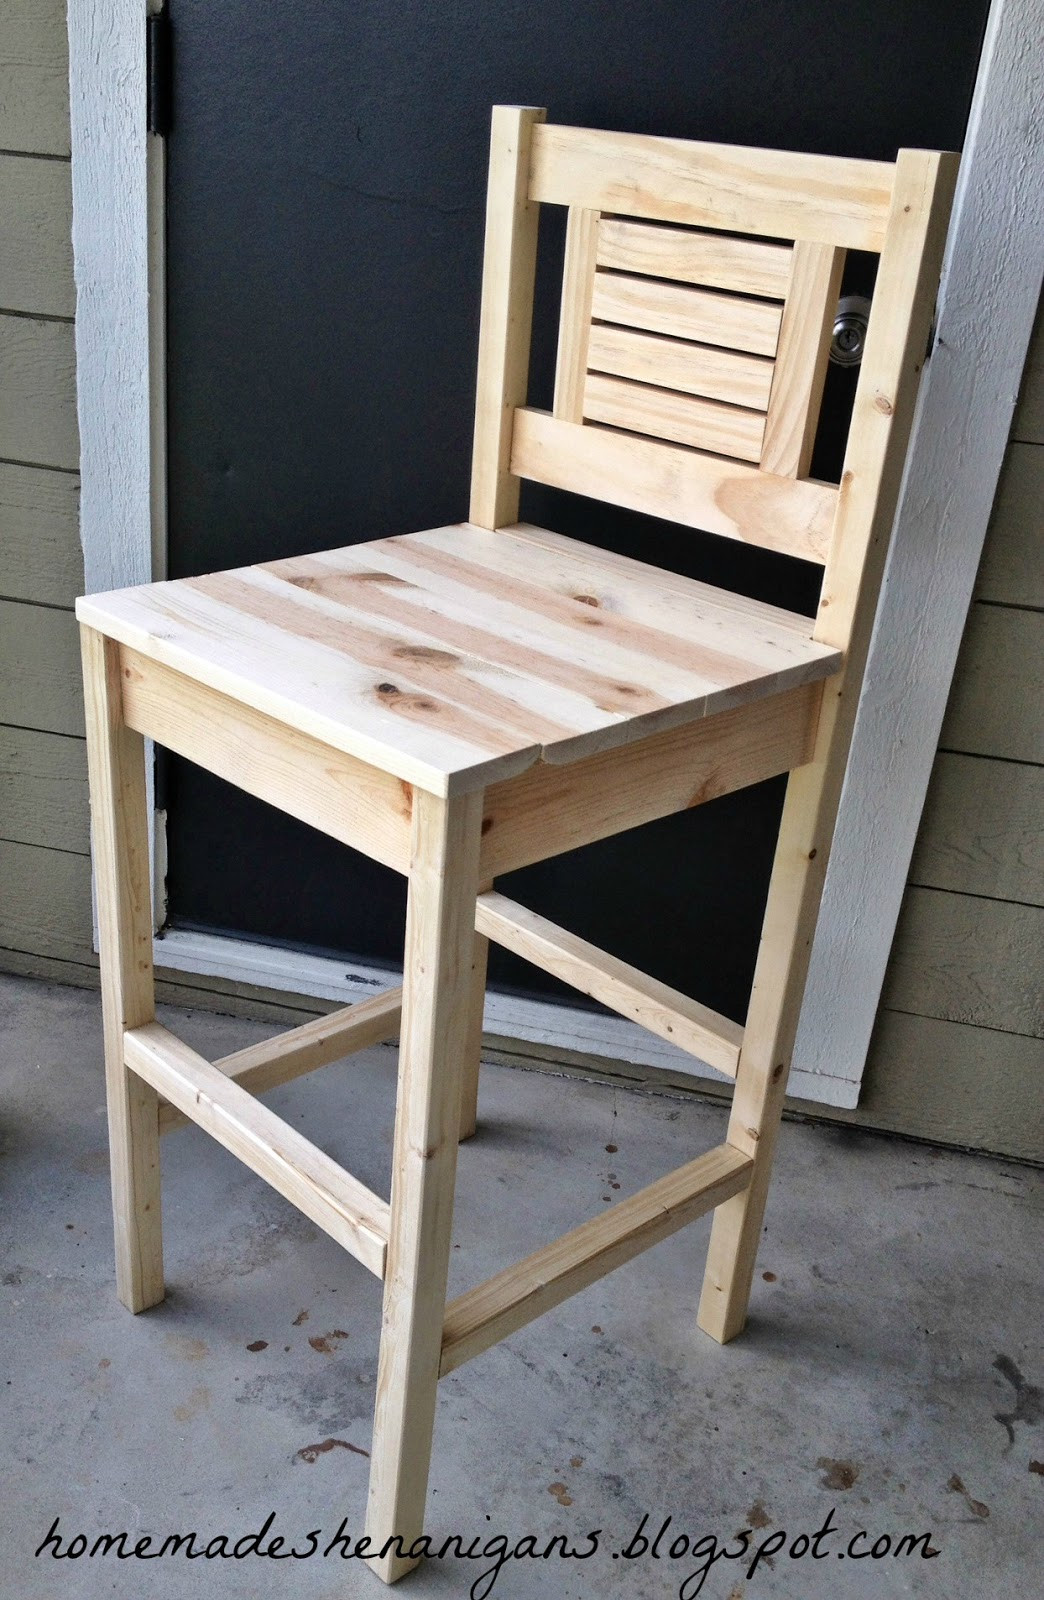 Best ideas about DIY Bar Stools . Save or Pin Homemade Shenanigans DIY Bar Stool Now.